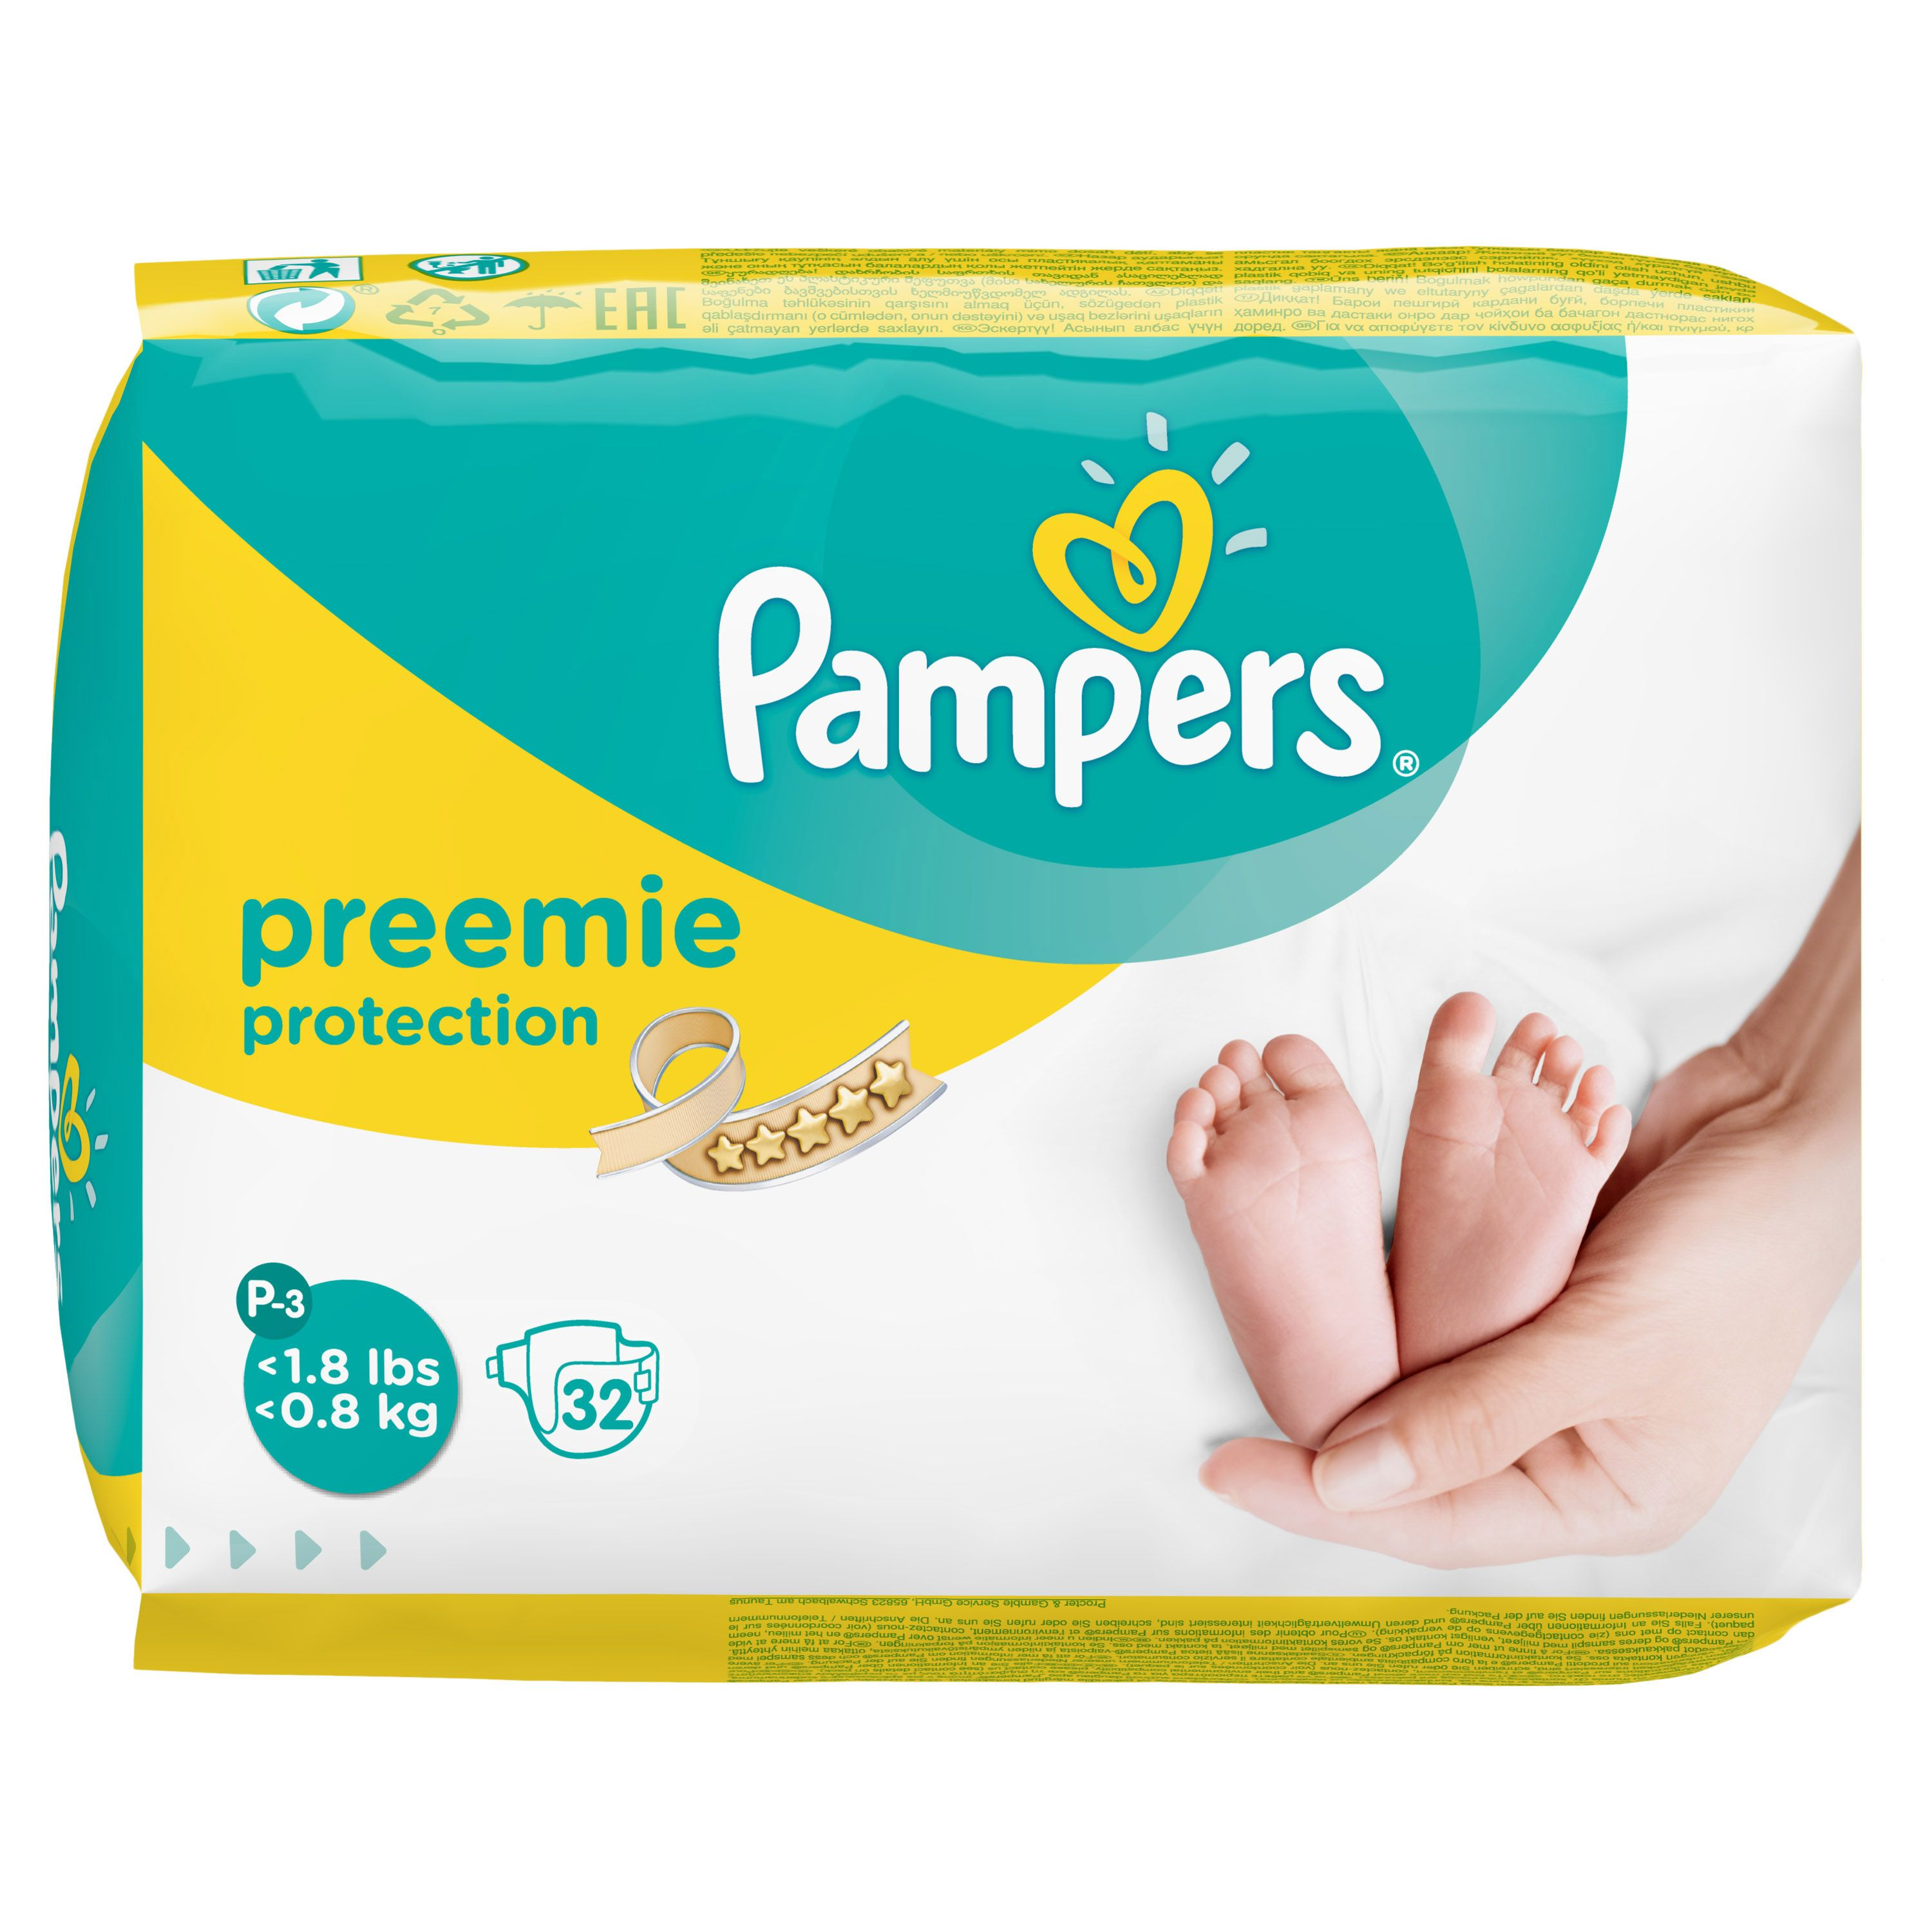 Pampers Preemie Protection P-3